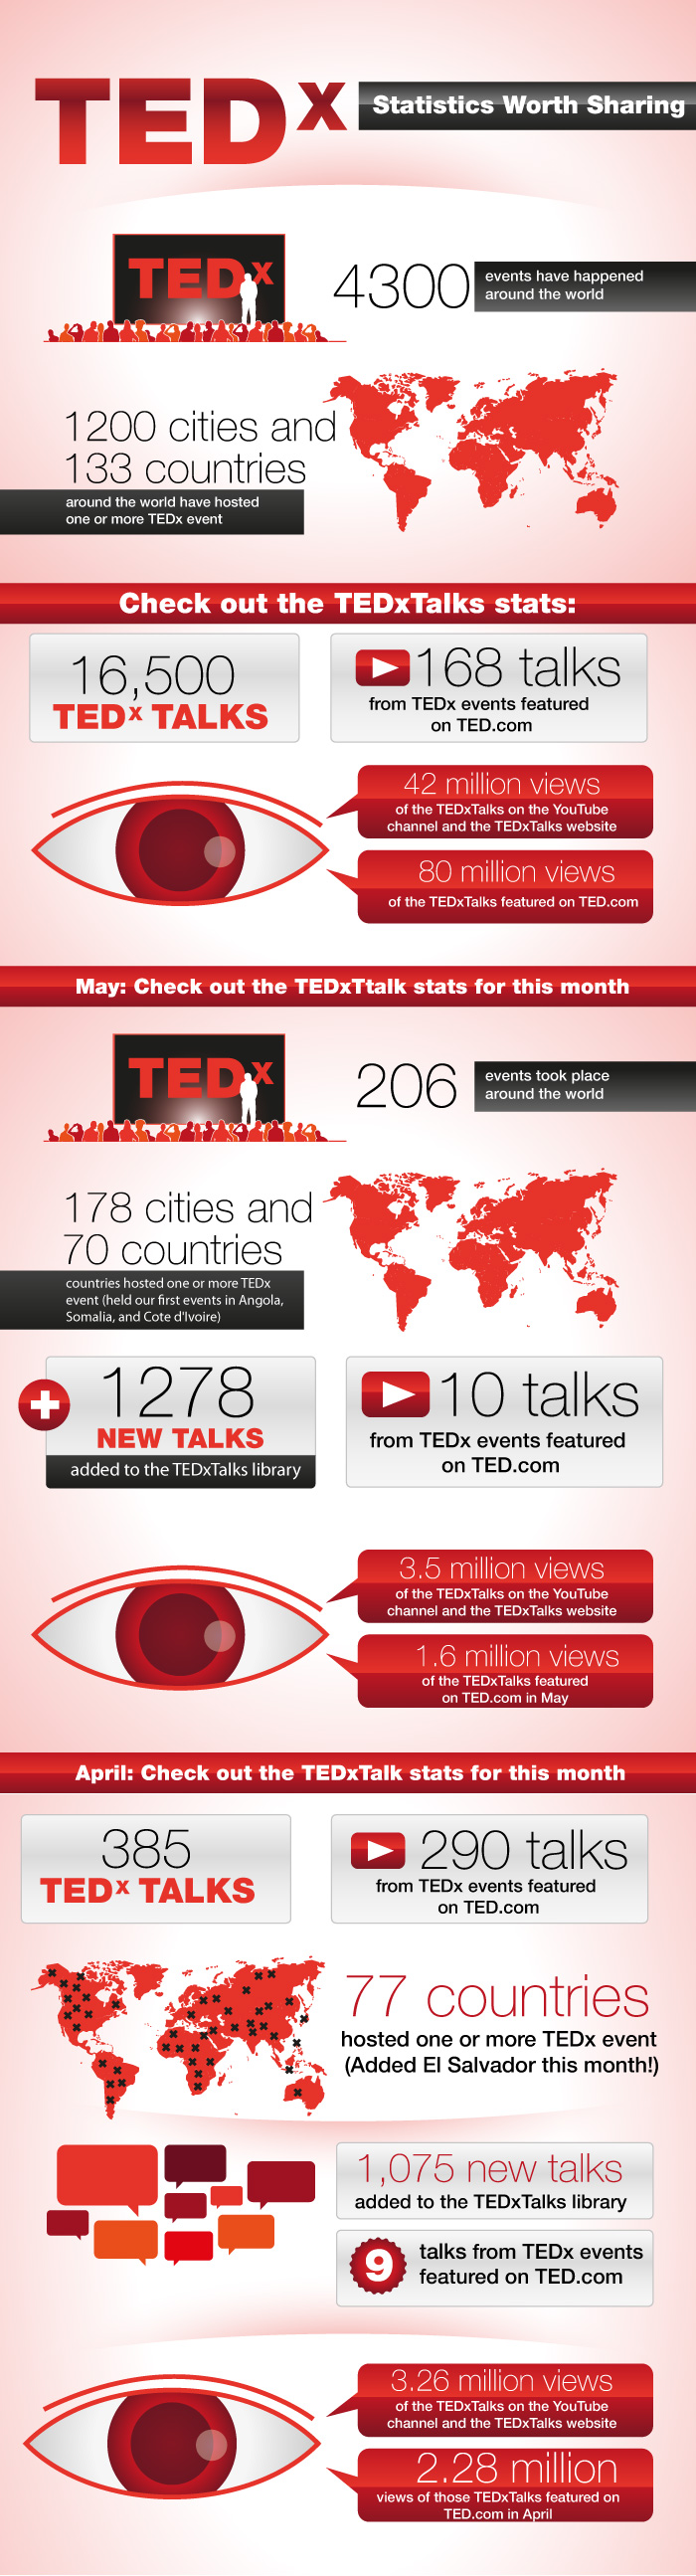 Insights in Tedx-Success-infographic